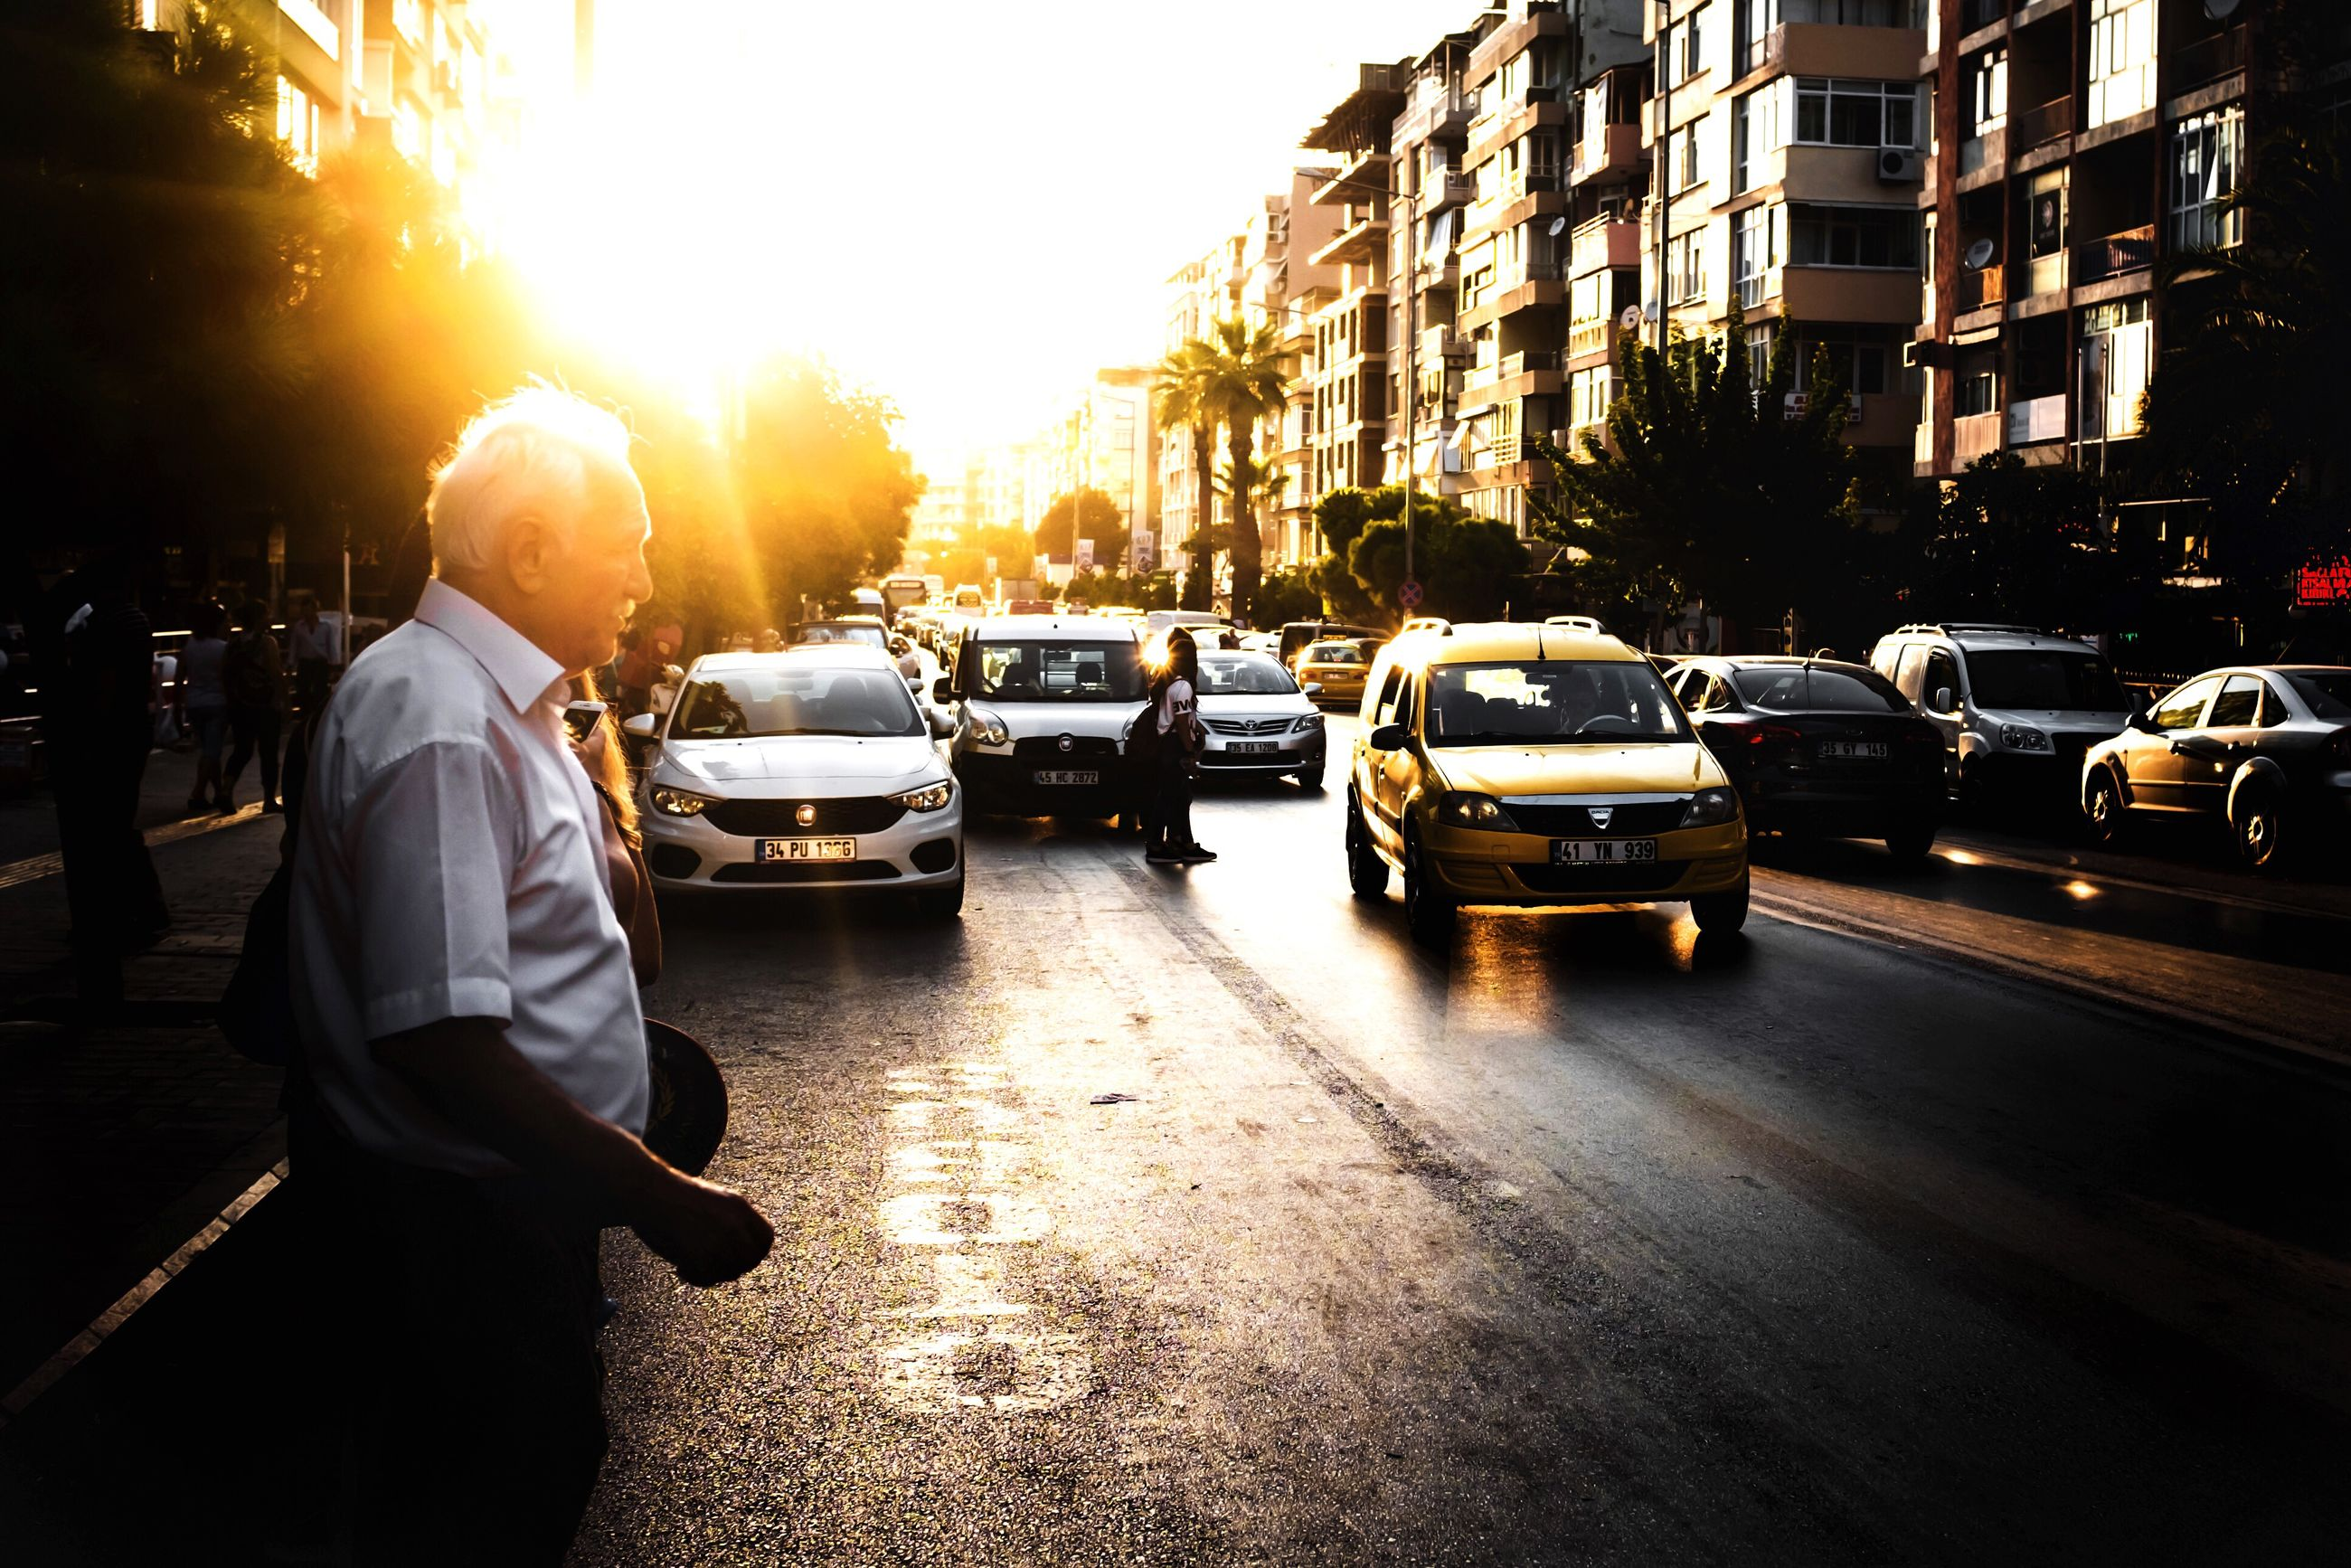 building exterior, car, architecture, city, built structure, real people, land vehicle, street, outdoors, sunlight, sunset, men, day, sky, people